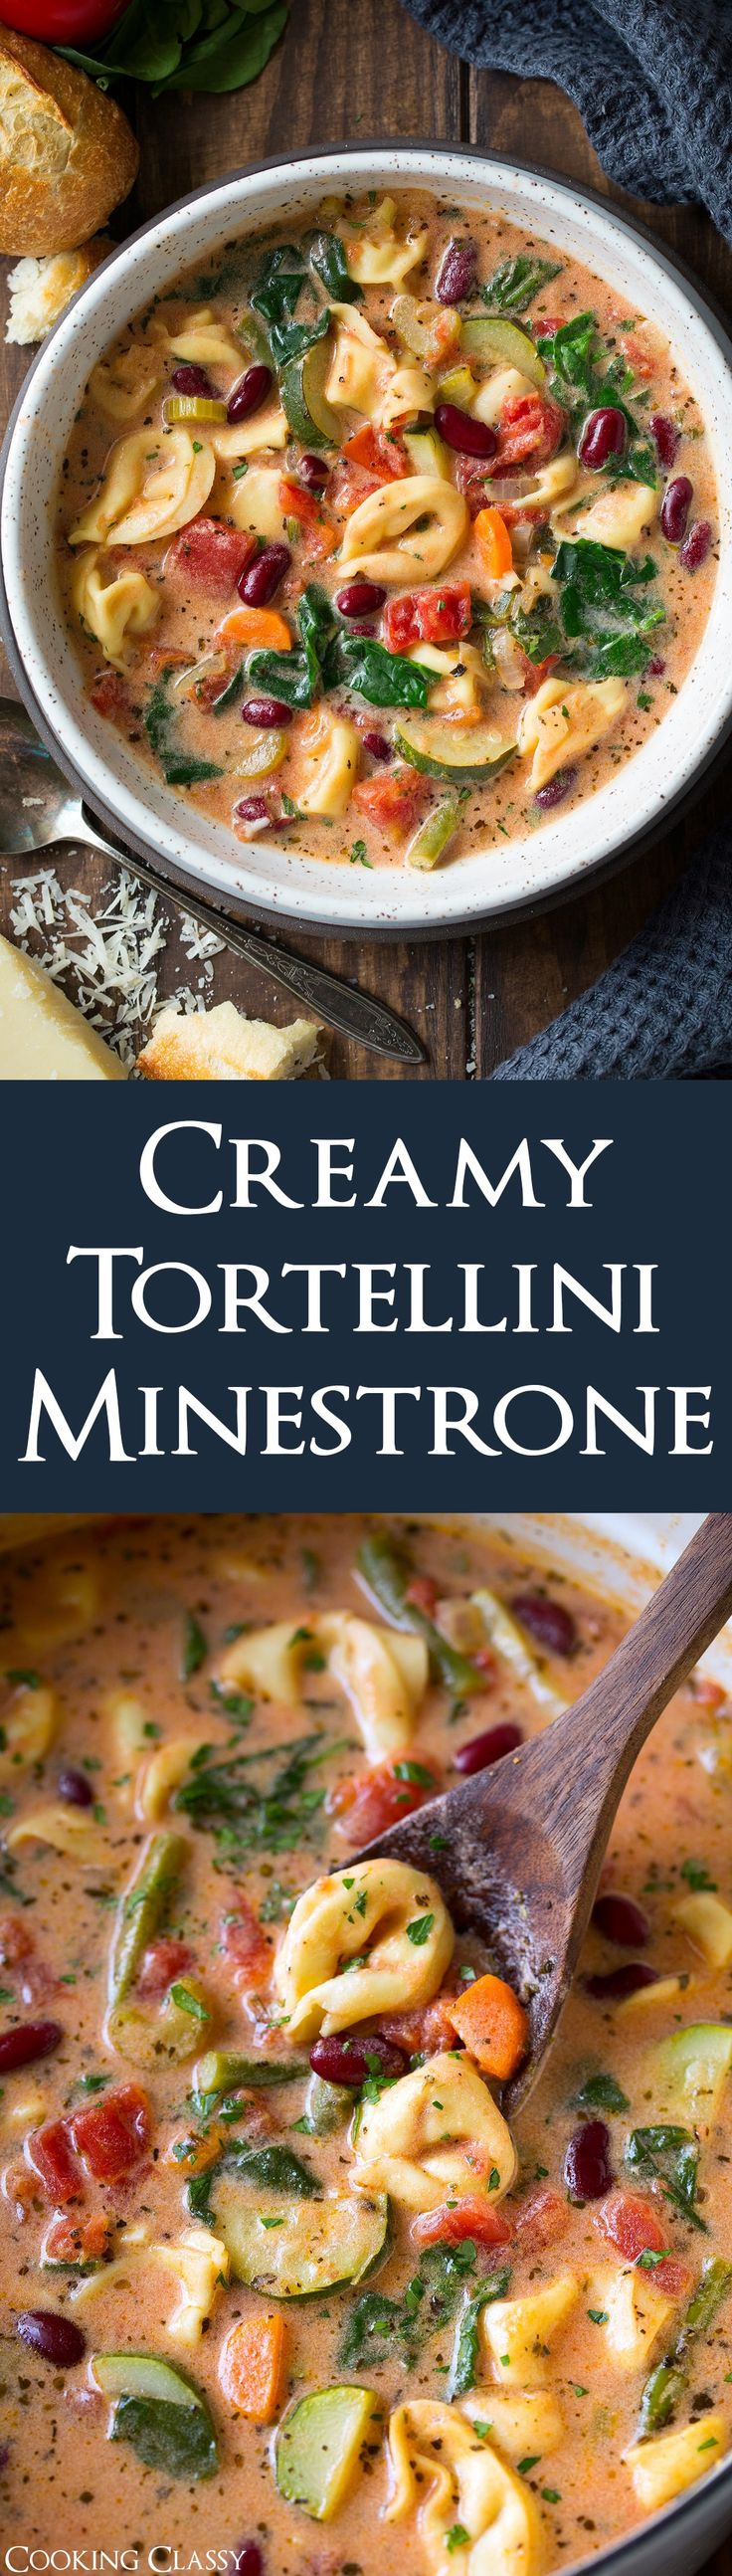 Creamy Tortellini Minestrone Soup - this is the BEST! You'll never want basic minestrone again. Creamy, hearty, packed with veggies and oh so satisfying!